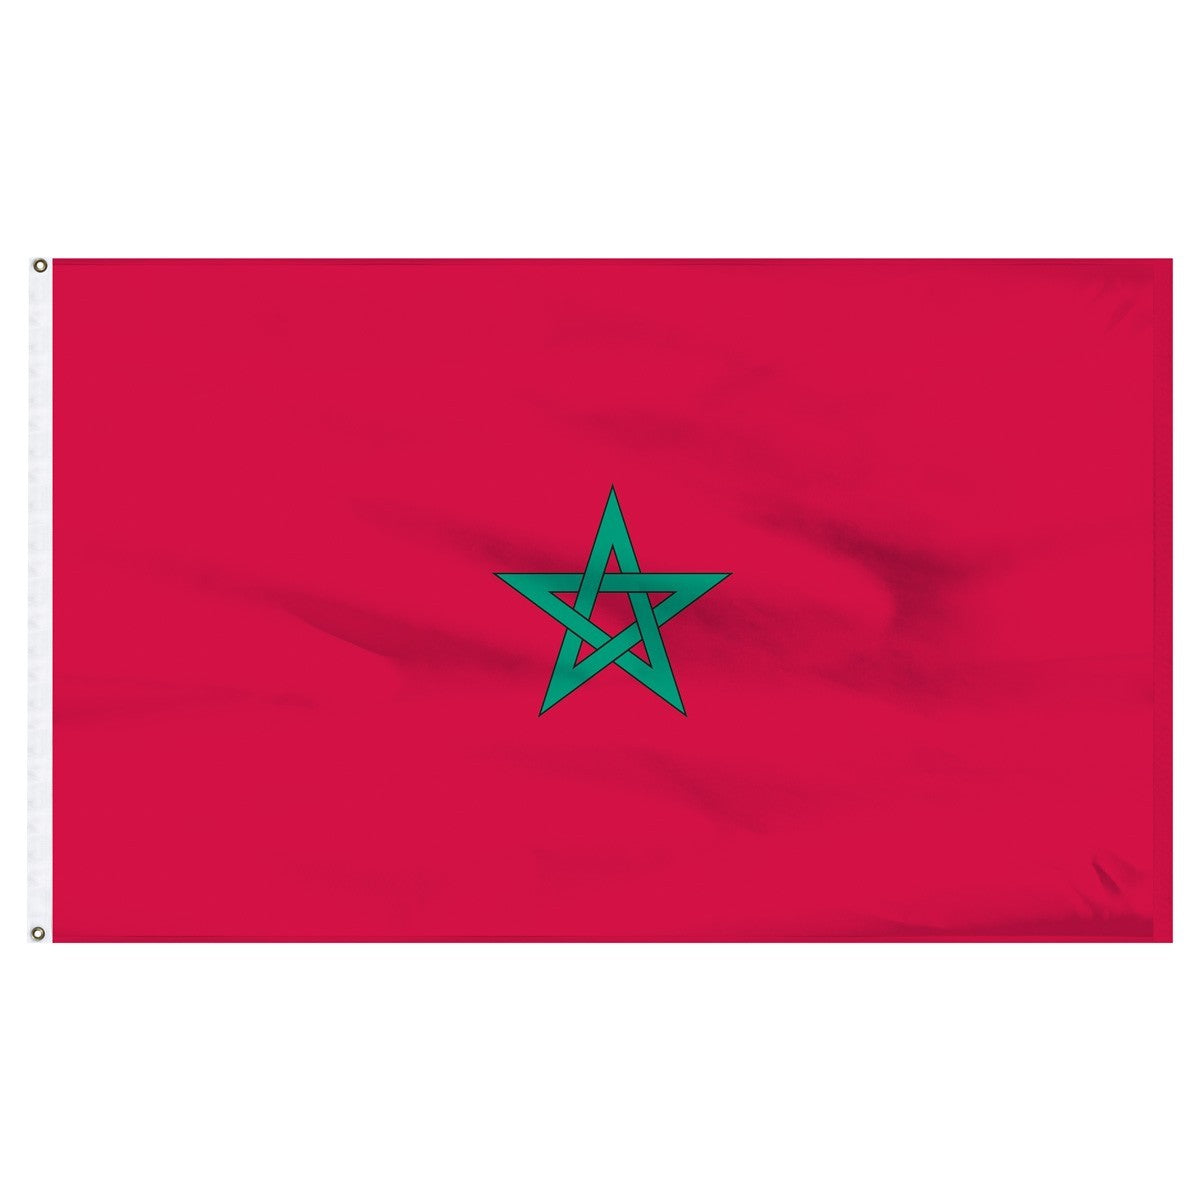 Morocco 3' x 5' Outdoor Nylon Flag